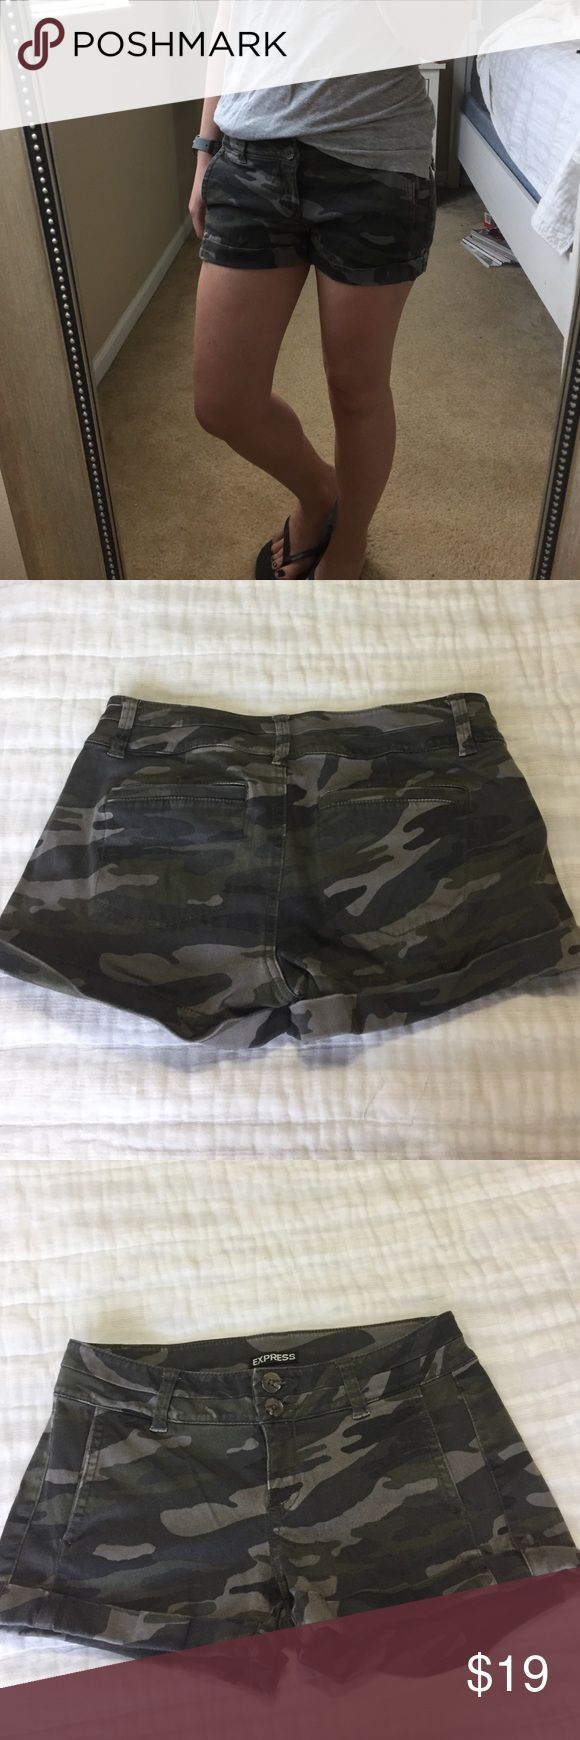 Relaxed Camo Shorts! Size 0 Express Camouflage shorts. Relaxed fit with small cuff at legs. Two front and two back pockets. Express Shorts